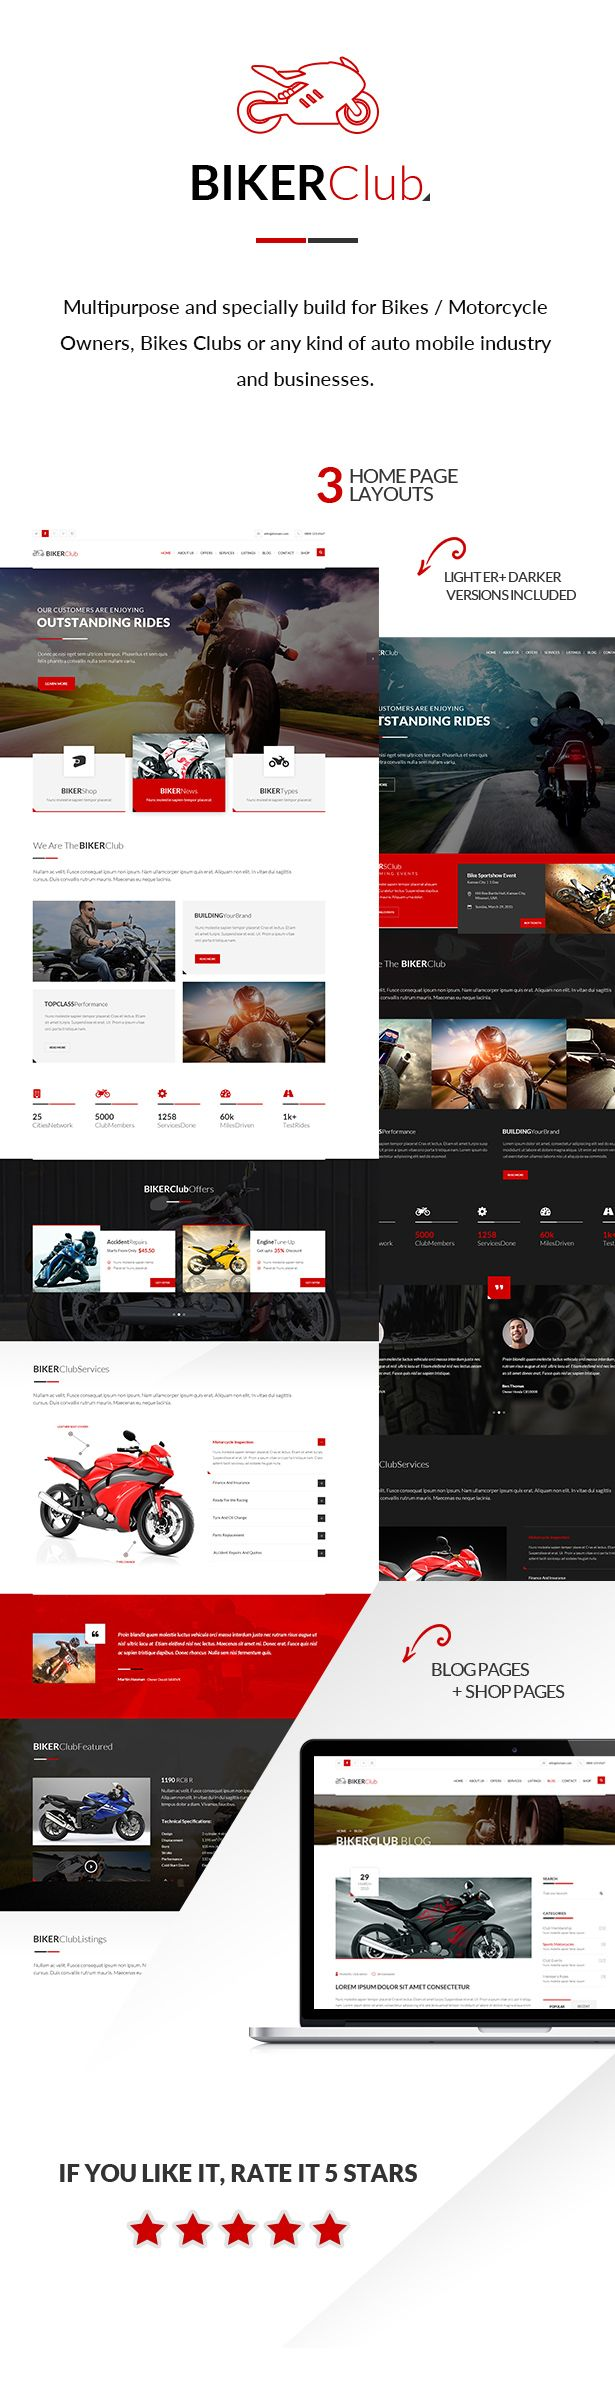 Bike Club Wordpress Theme Is Multipurpose And Specially Build For